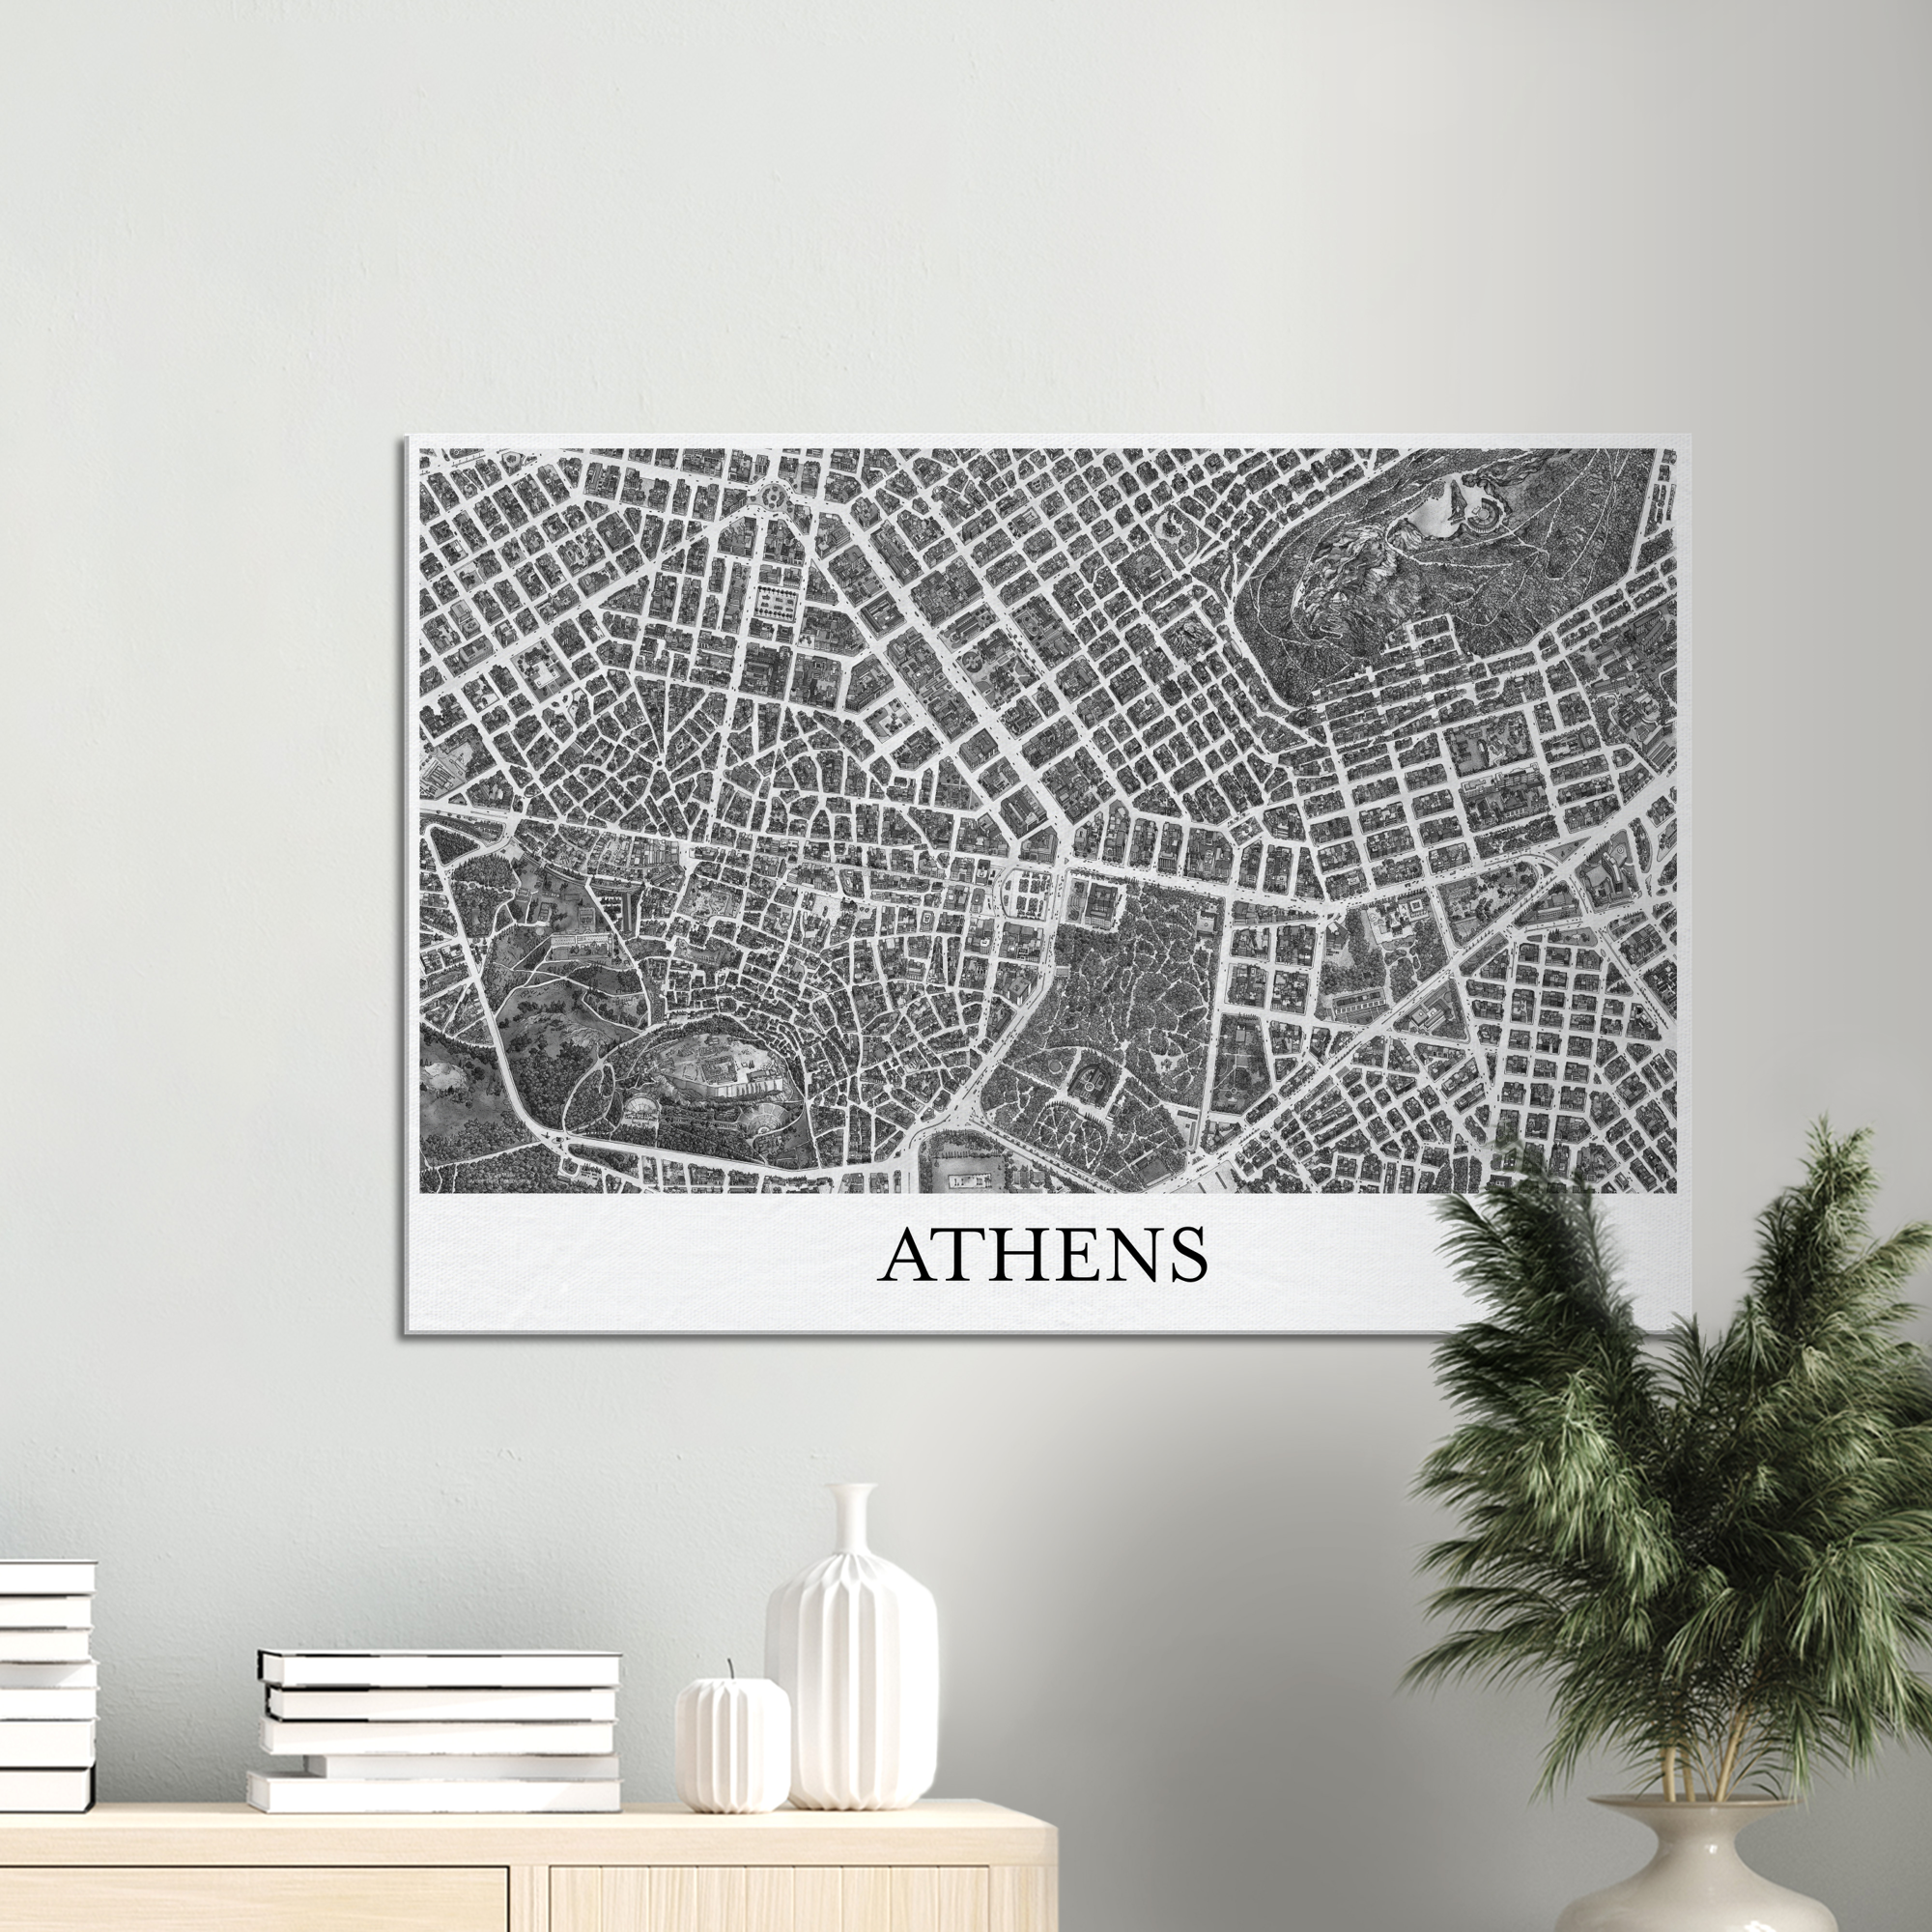 Athens, Greece - Black & White Canvas Print - Framed